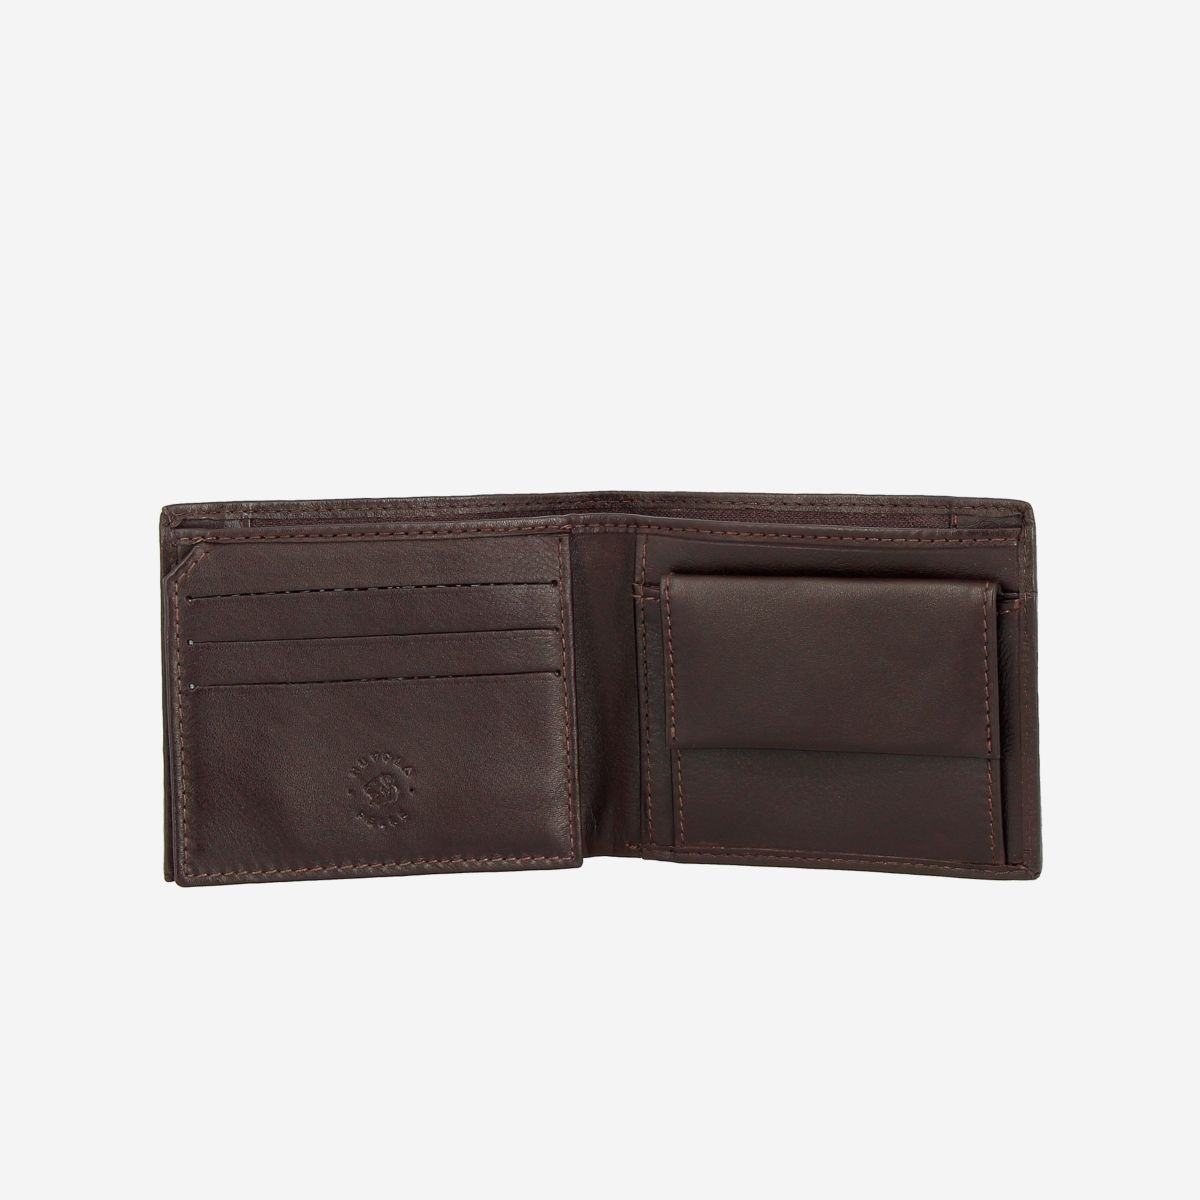 NUVOLA PELLE Small Wallet For Men With Coin Purse - Dark Brown